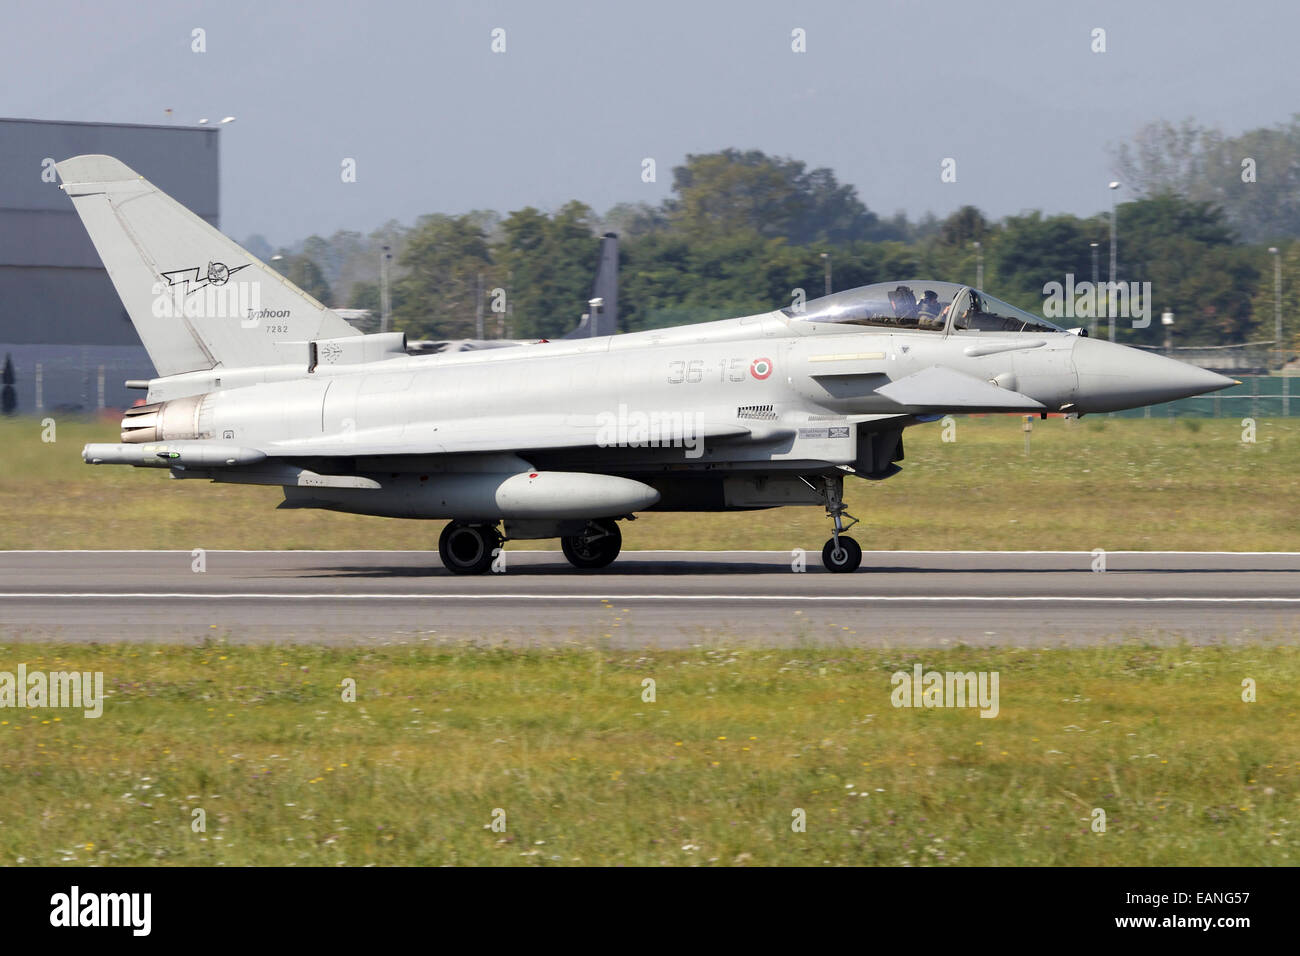 A Eurofighter Typhoon 2000 of the Italian Air Force taxiing on the runway at Turin Airport, Italy. - Stock Image